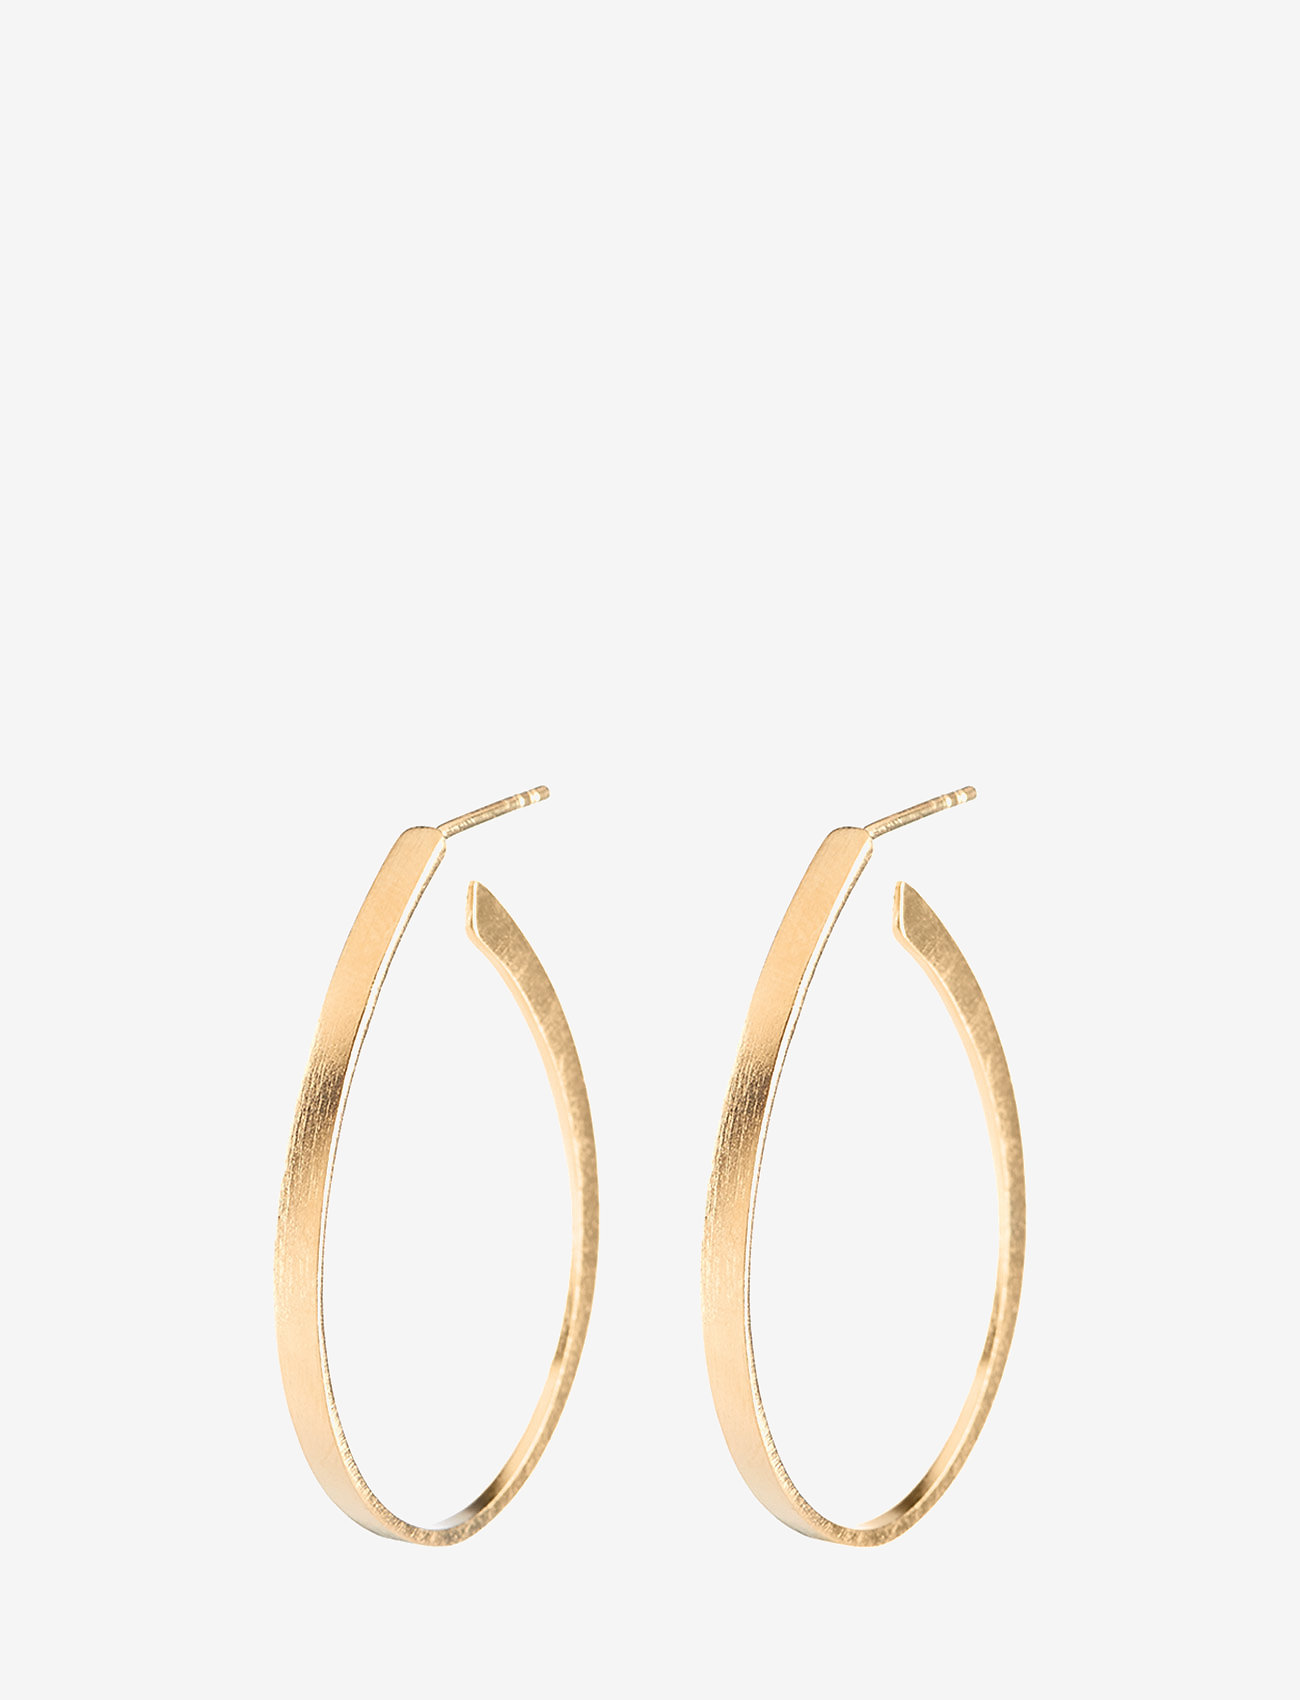 Pernille Corydon - Oval Creoles  size 35 mm - statement earrings - gold plated - 0